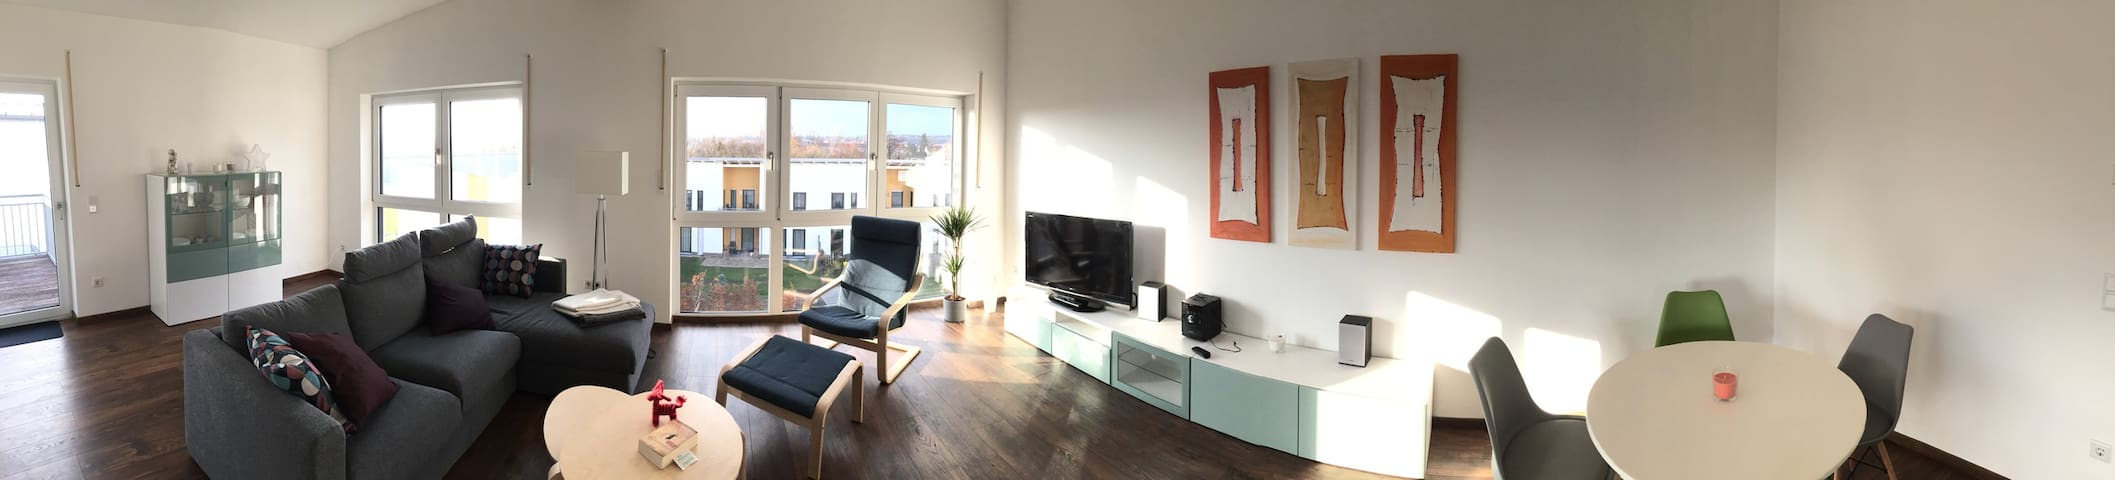 Great appartment in Schnaittach next to Nuremberg